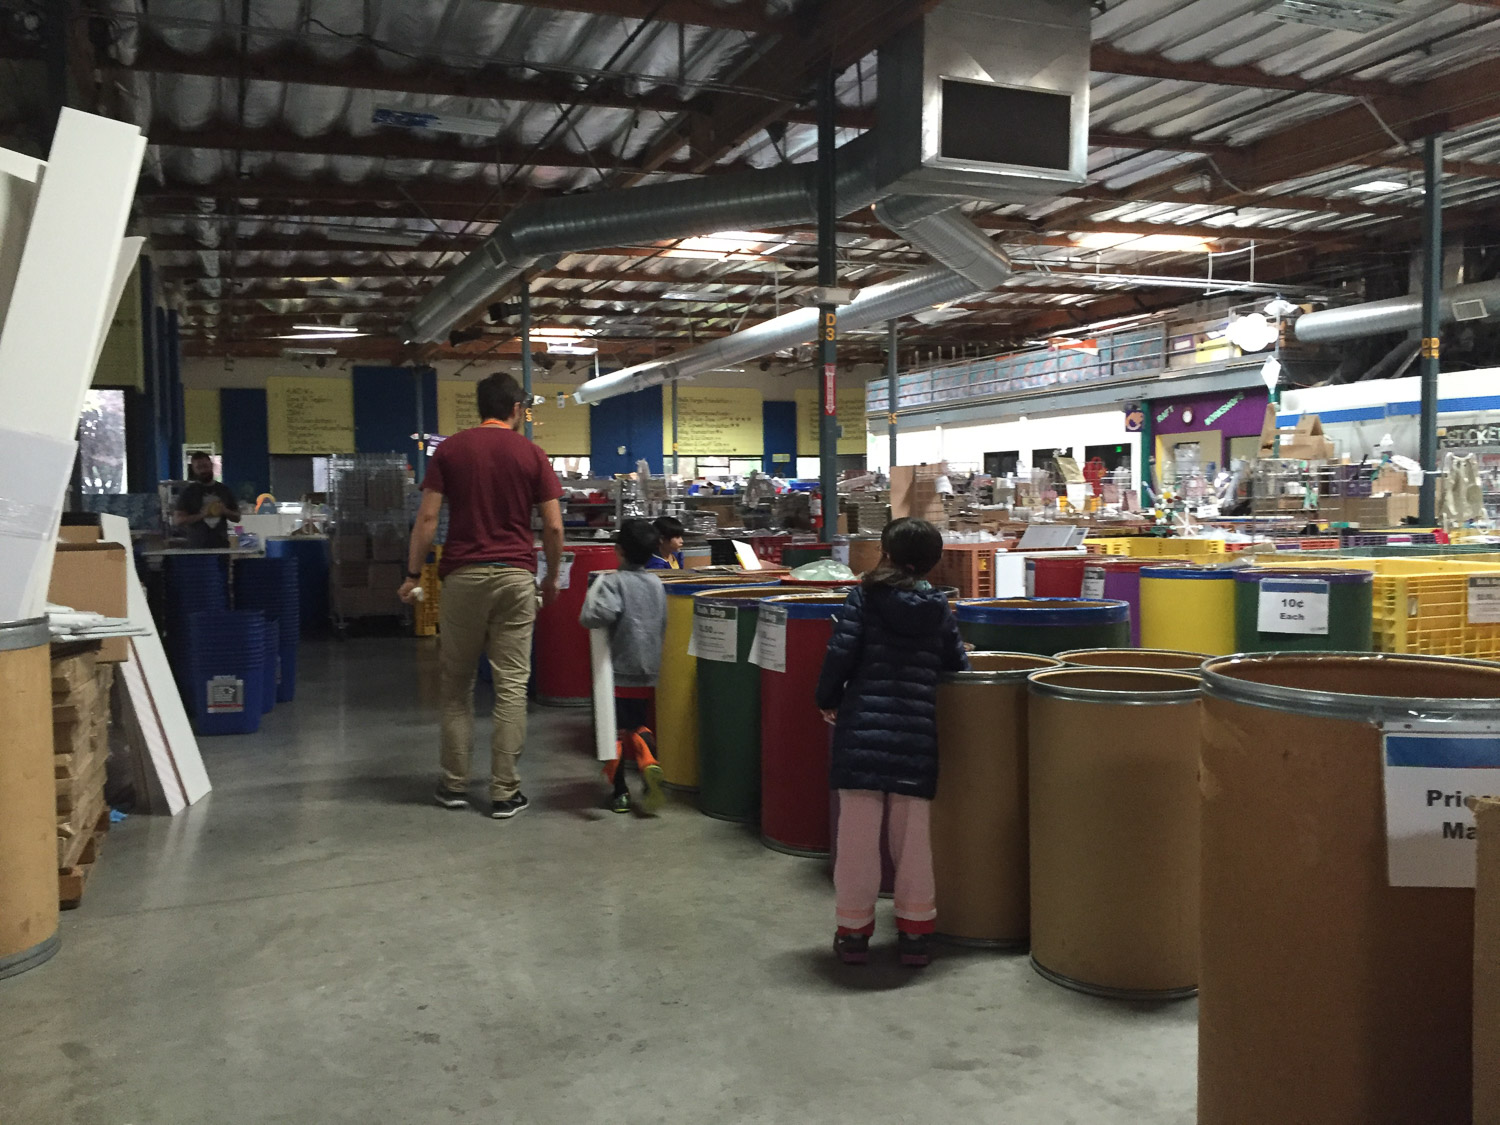 Josh, Lev, Noe and Ada dig through the bins at RAFT for the most inspiring brush materials.